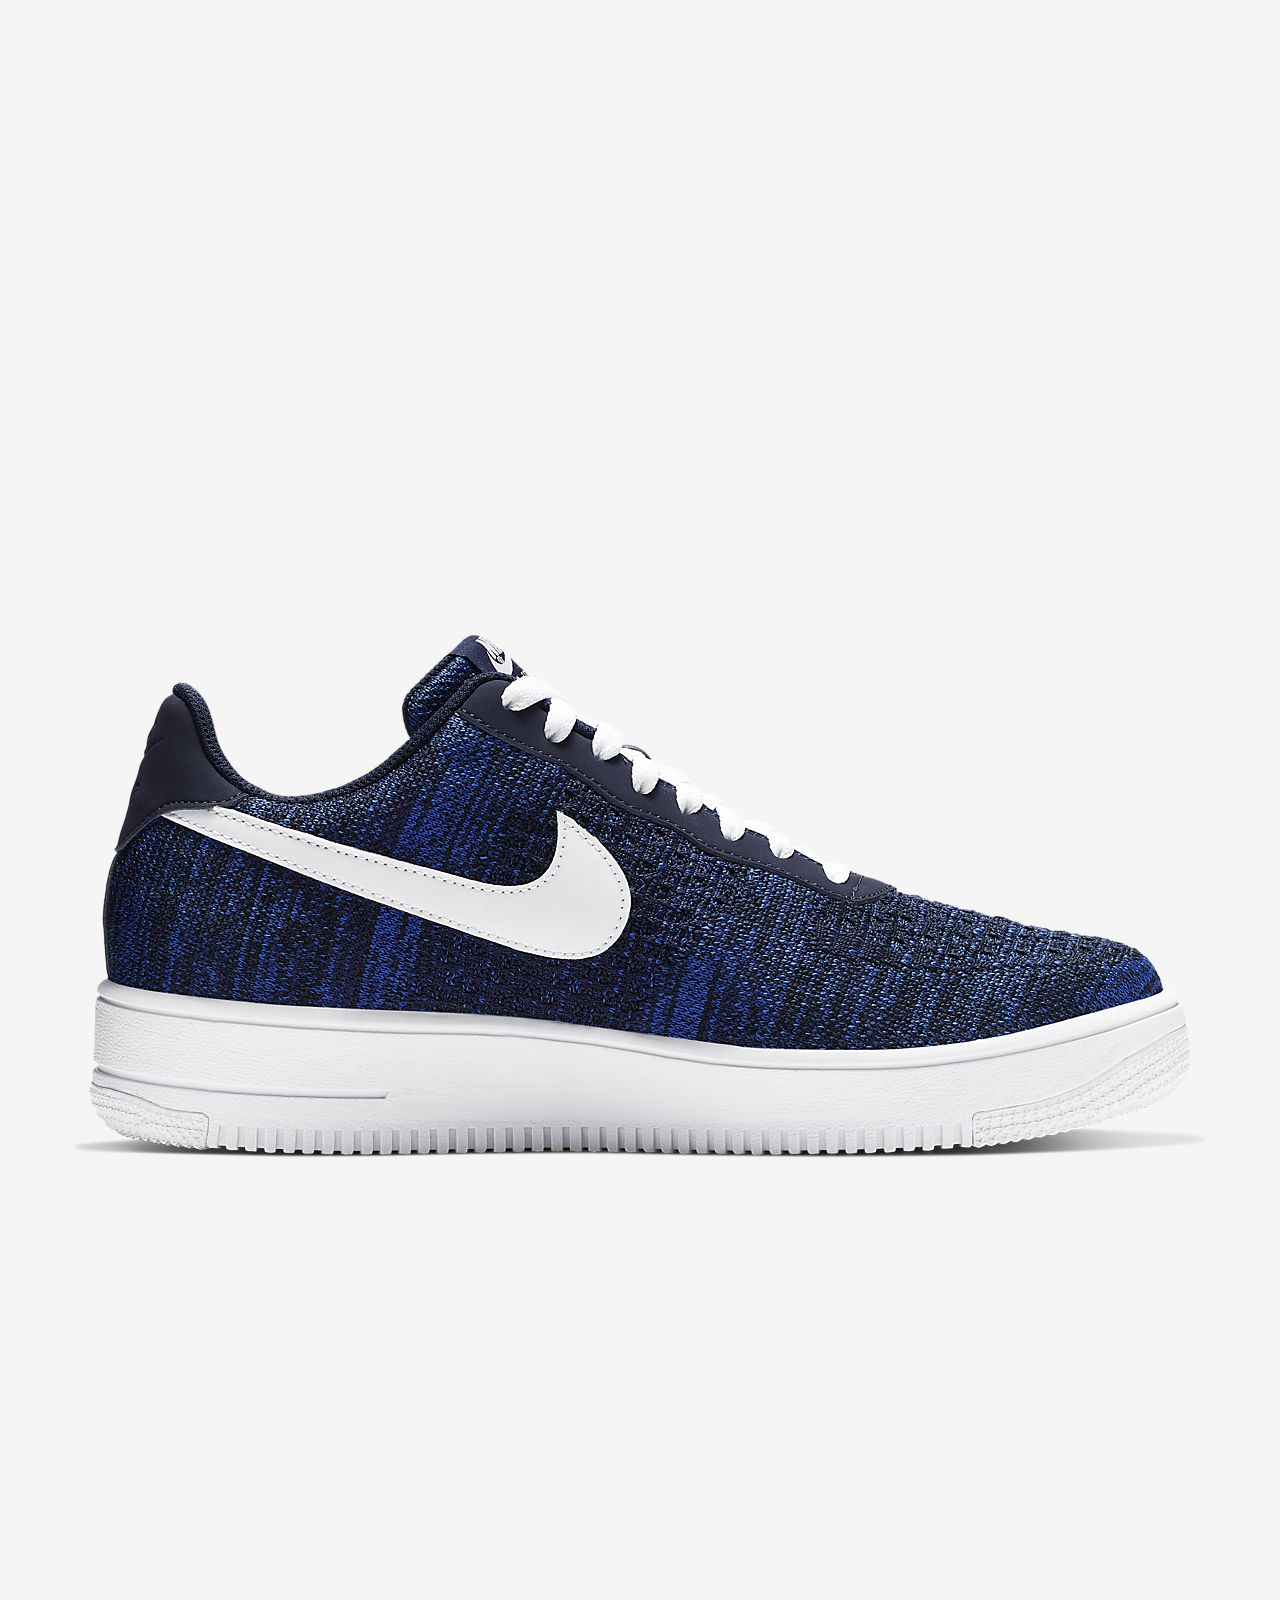 grossiste 1e8d7 cf5f5 Nike Air Force 1 Flyknit 2.0 Shoe